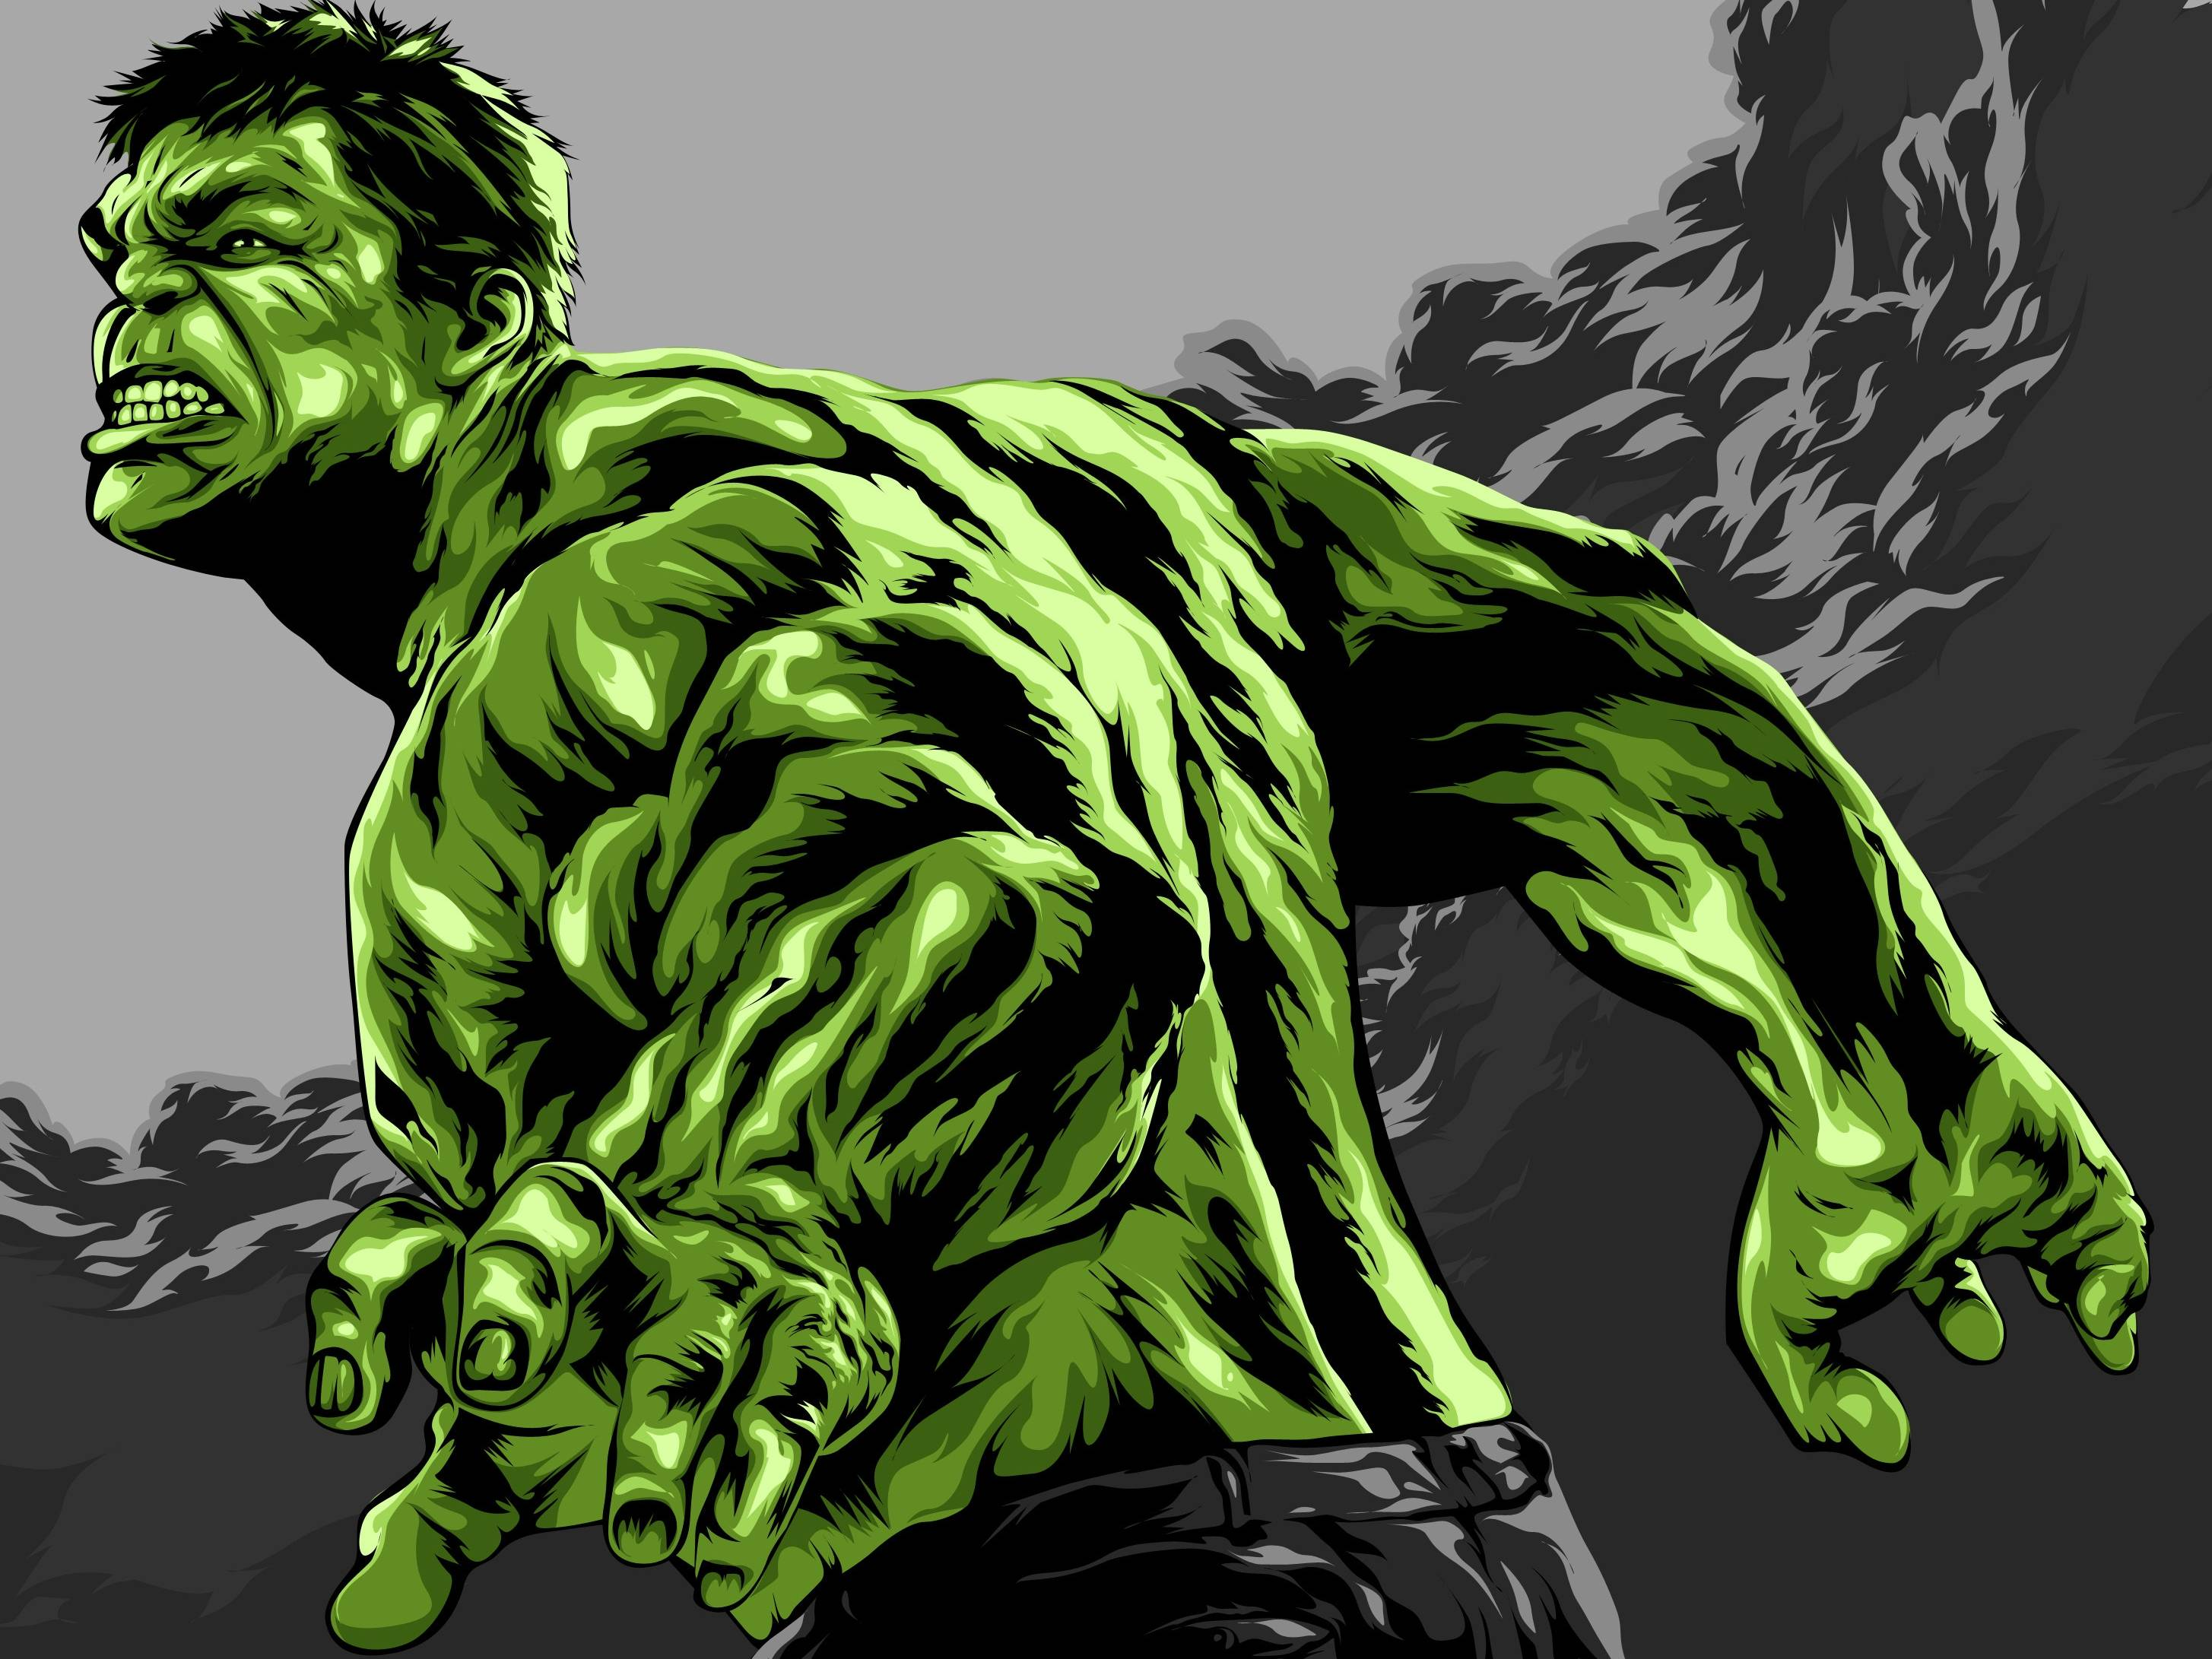 Hulk iPad Wallpapers - Top Free Hulk iPad Backgrounds